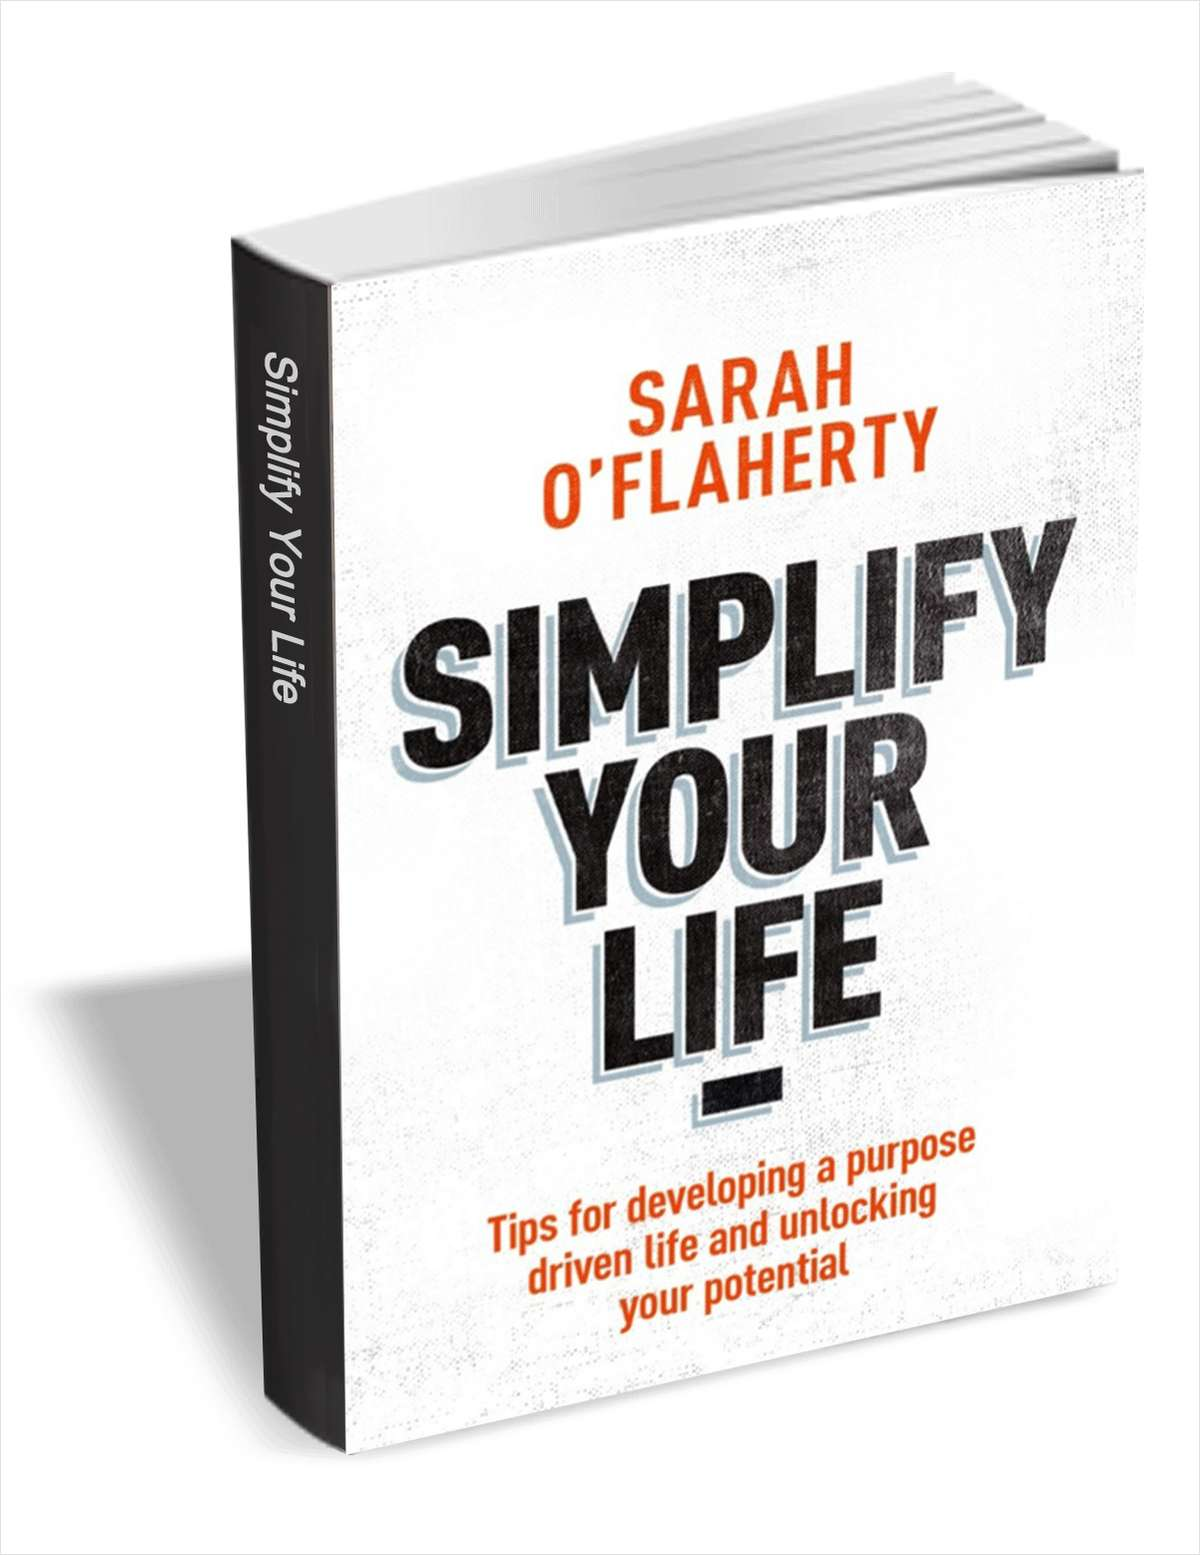 Simplify Your Life - Tips for Developing a Purpose Driven Life and Unlocking Your Potential